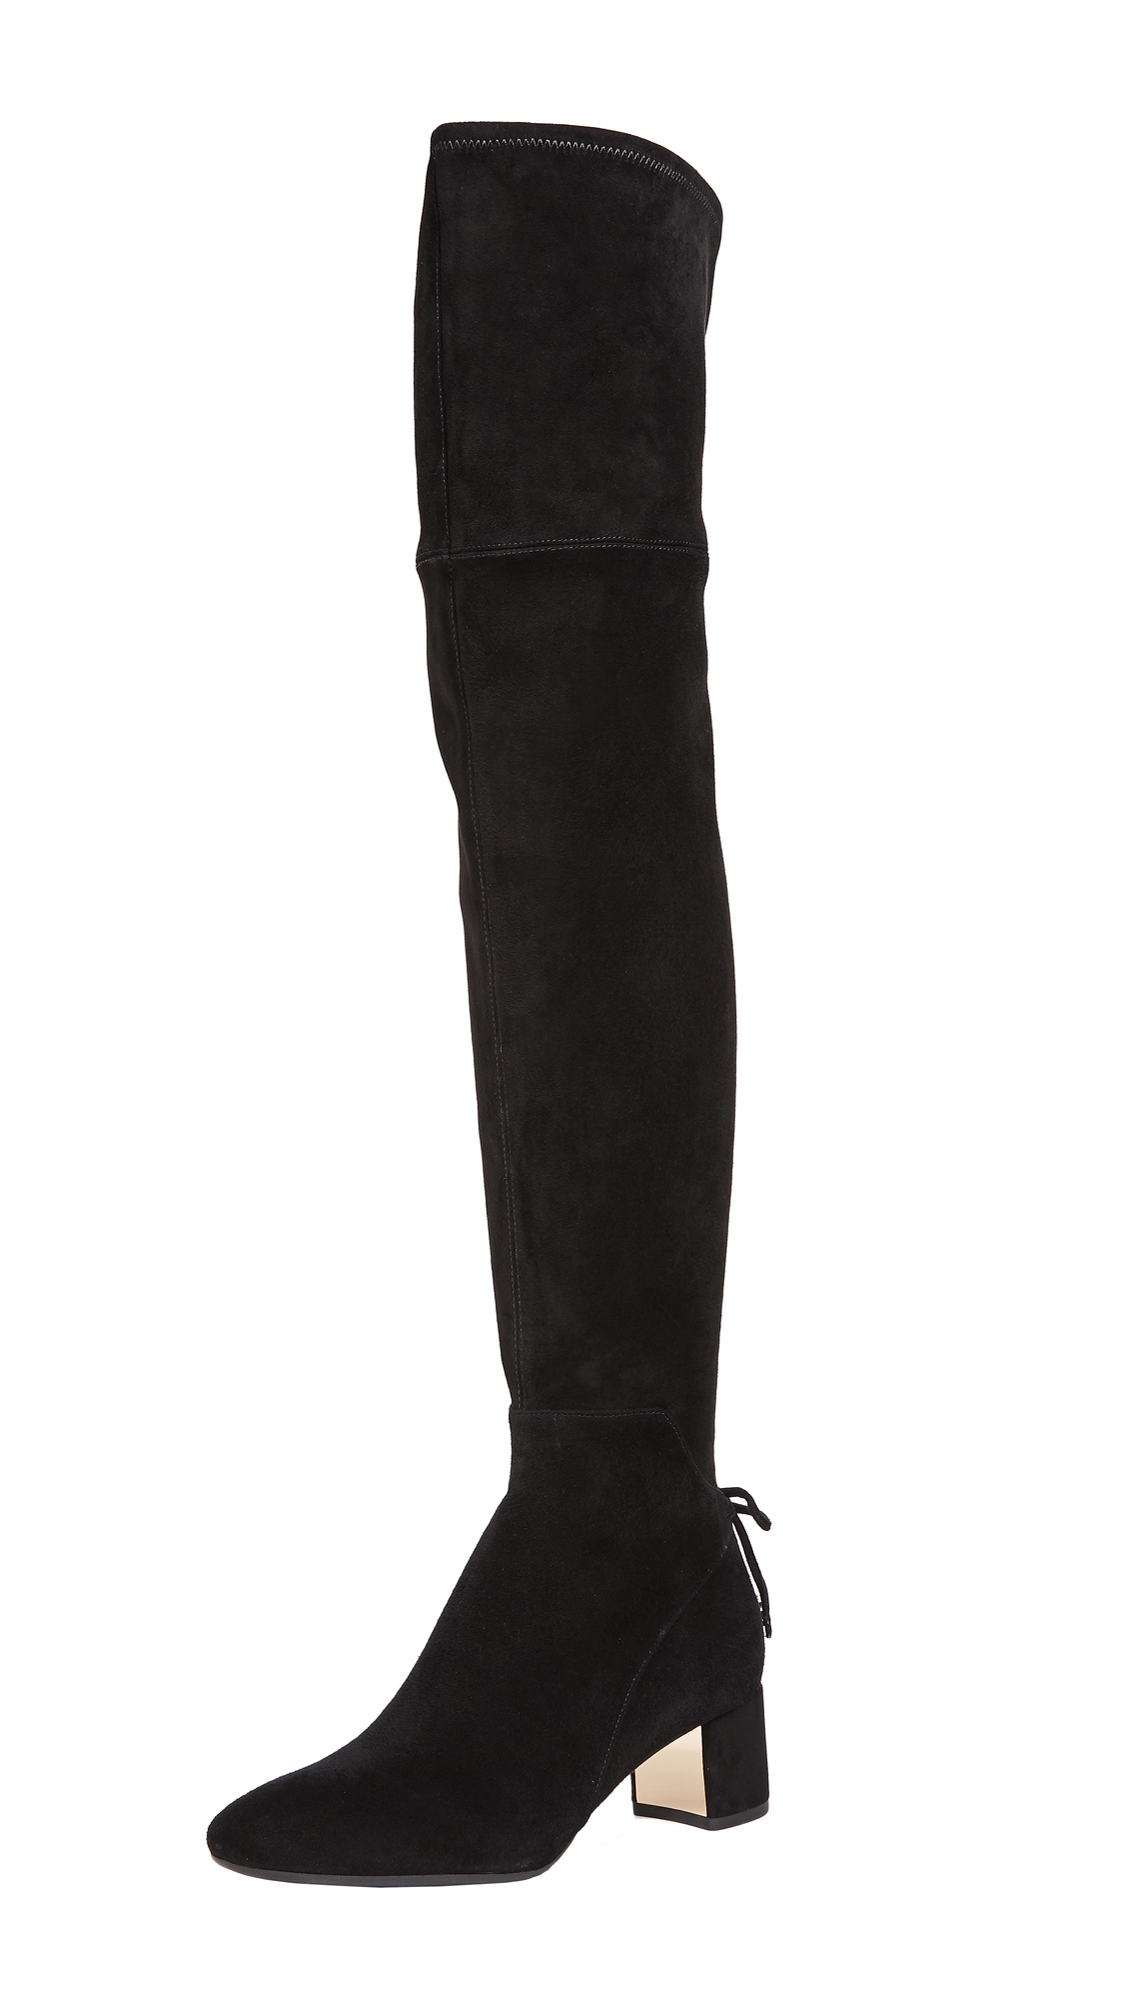 Tory Burch Laila 45Mm Over-the-Knee Boots - Black